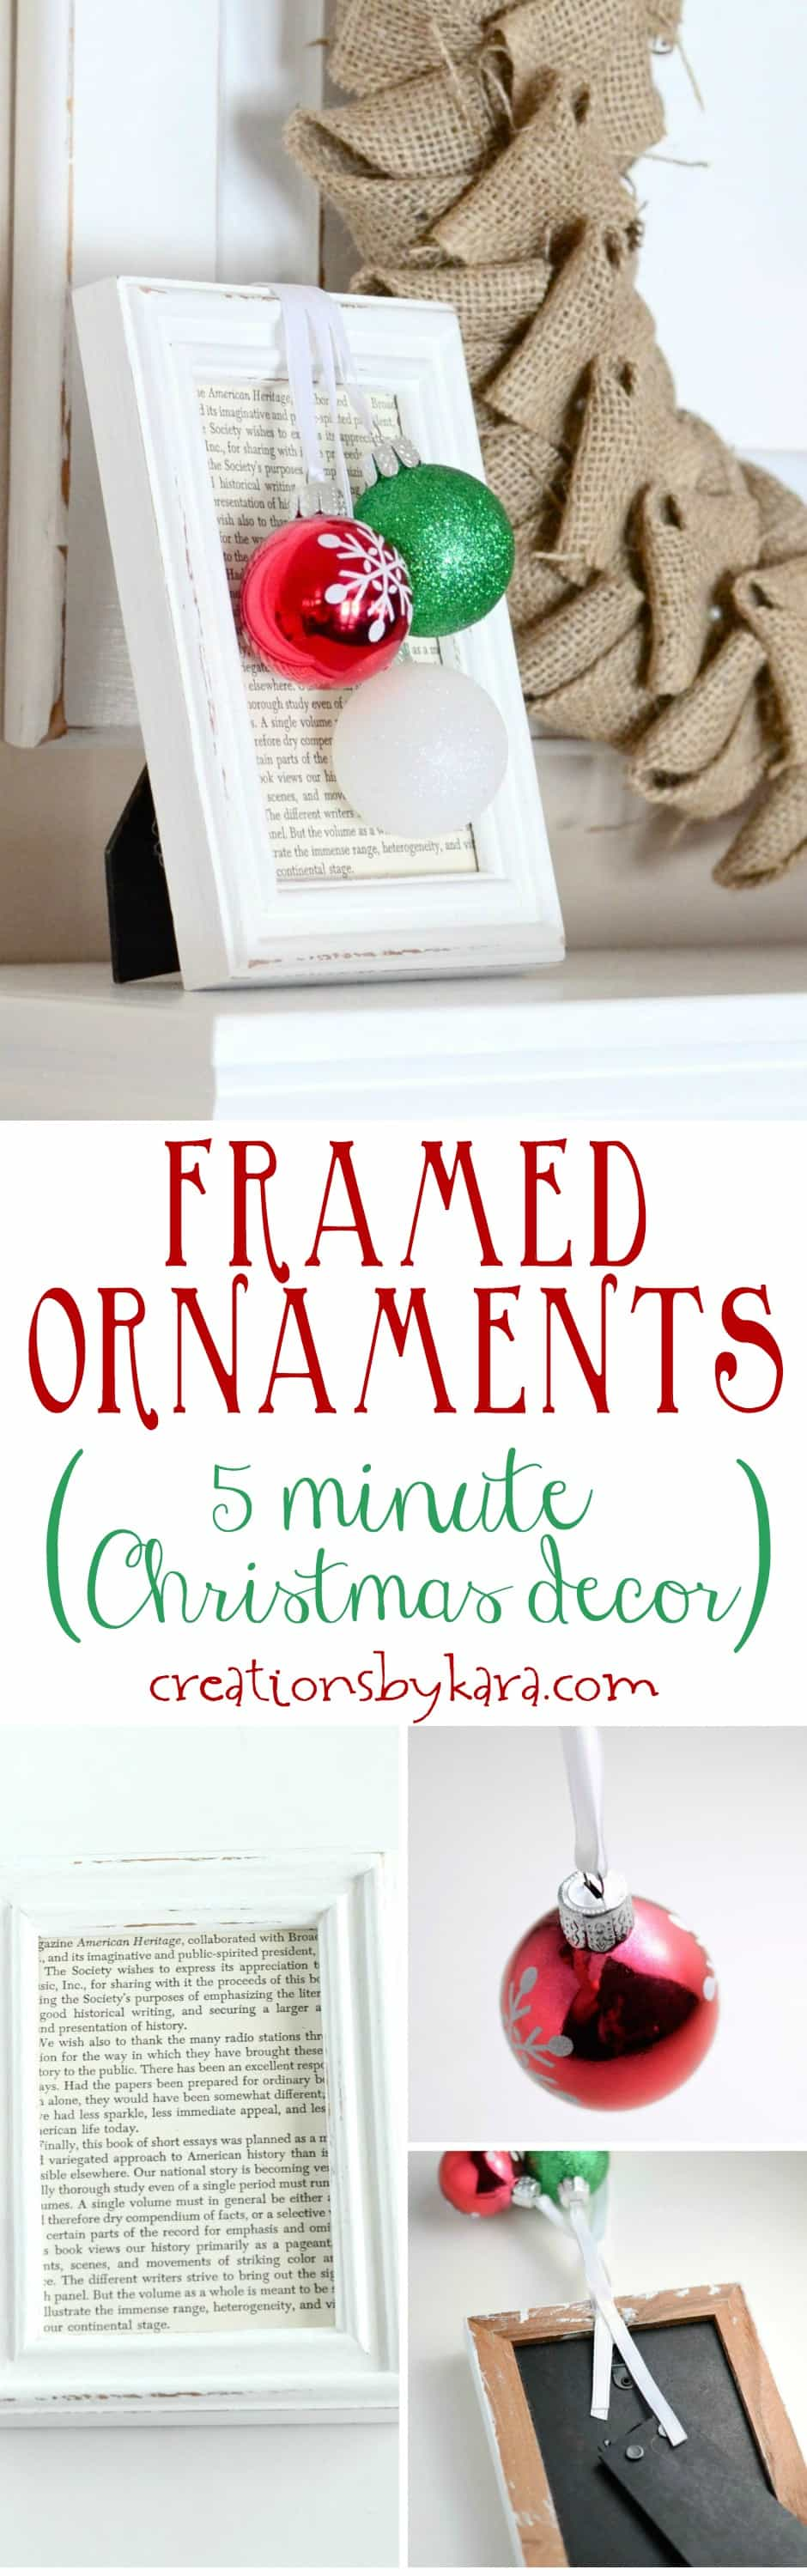 Framed ornaments make quick and easy Christmas decor. They take only minutes to make, and can match any color scheme. A perfect DIY Christmas project!